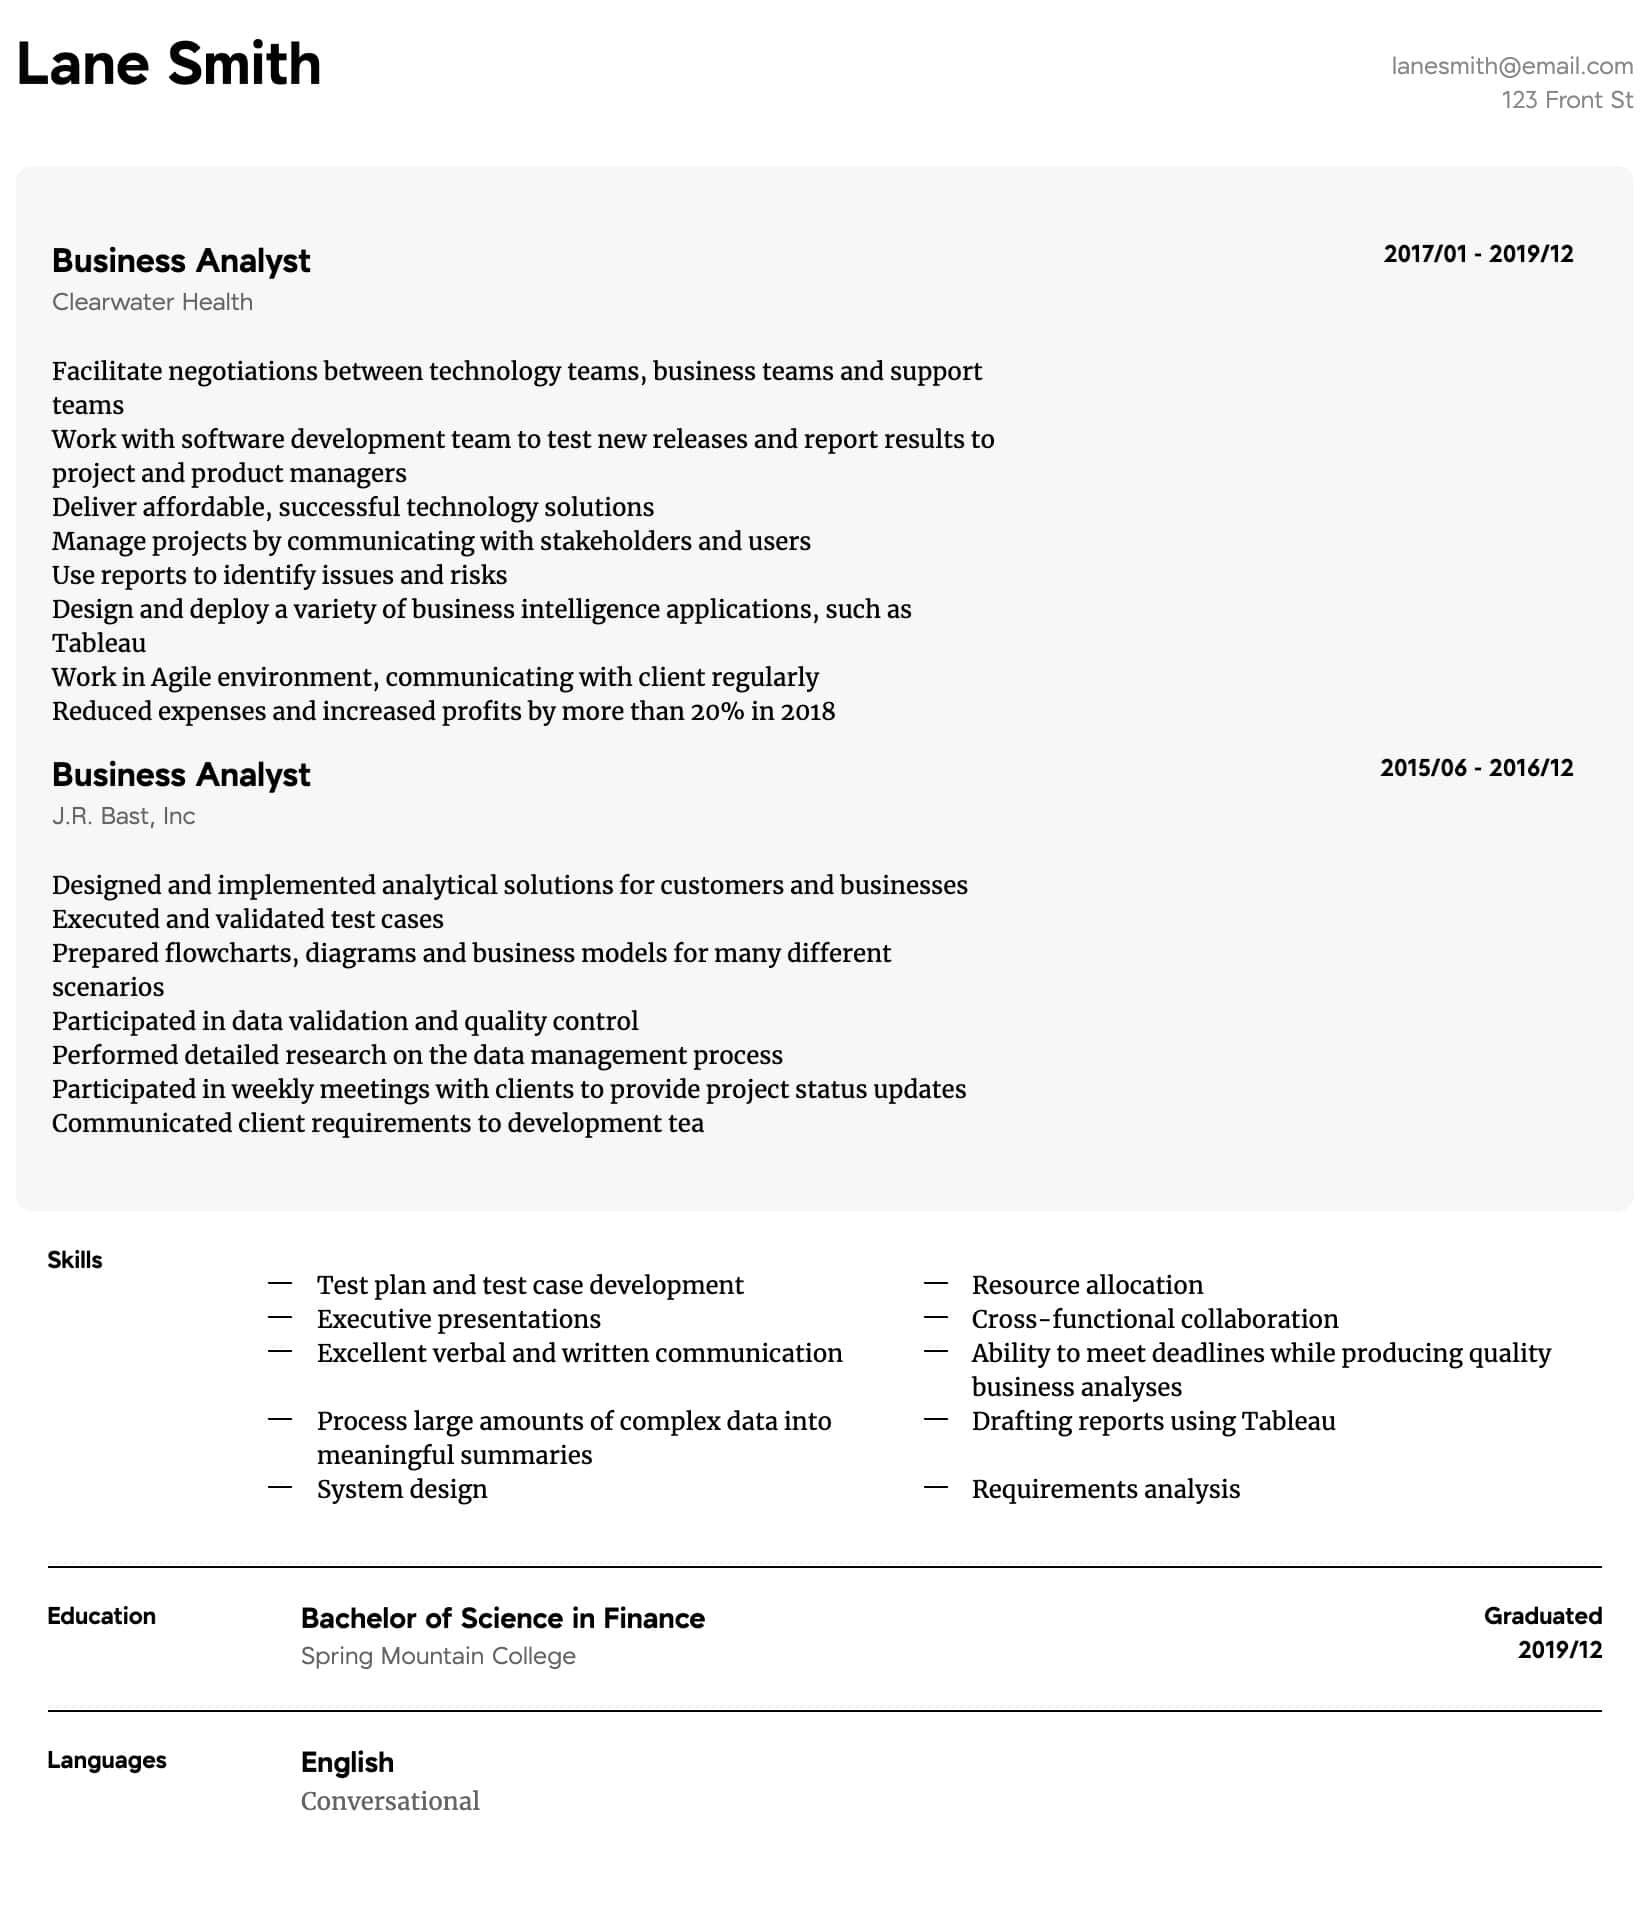 business analyst resume samples all experience levels template intermediate opening Resume Business Analyst Resume Template